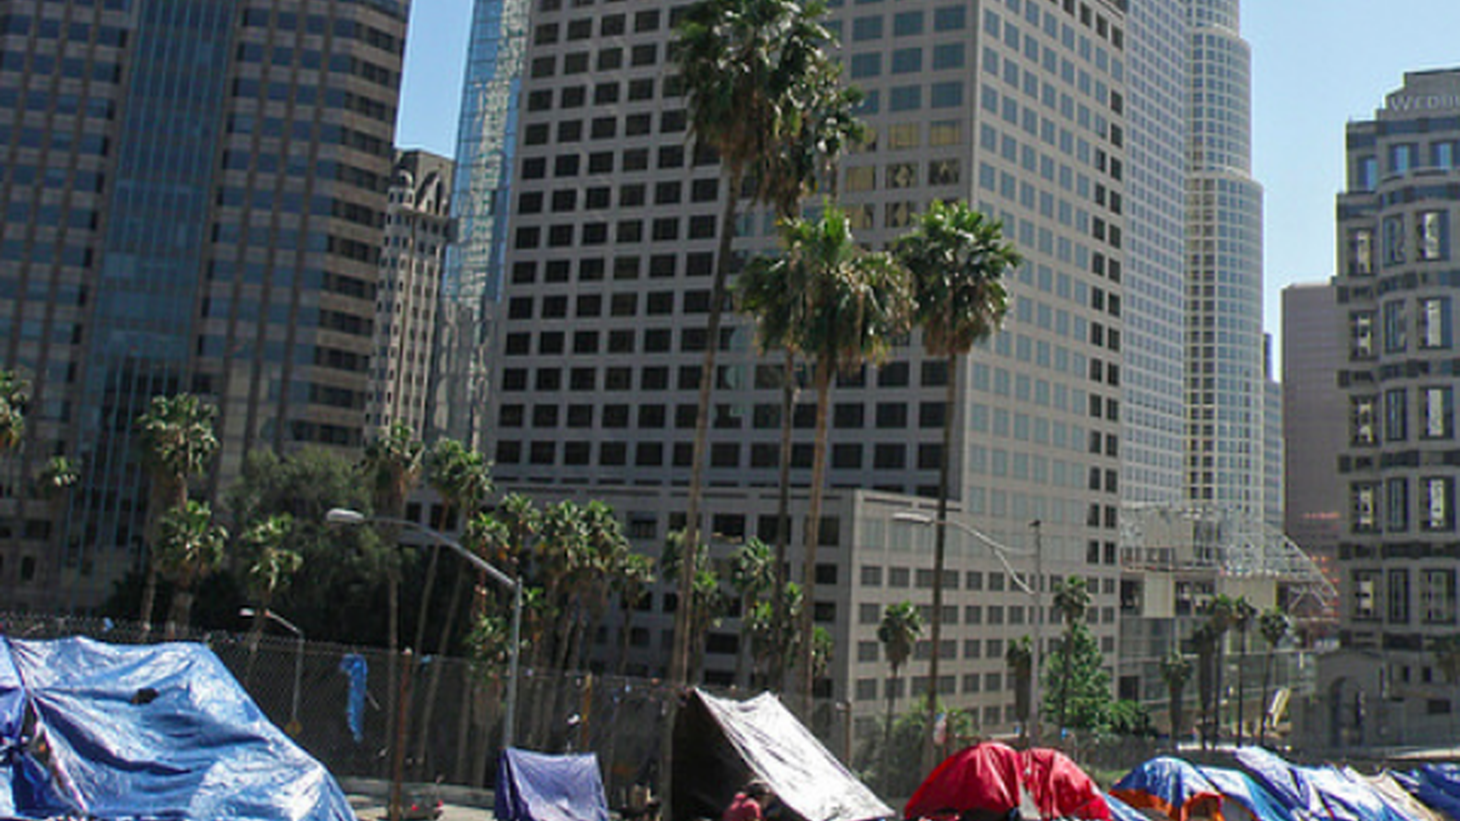 Homelessness in LA County dropped 3 percent from last year. Sounds like good news for Mayor Eric Garcetti, who wants to end homelessness by year 2028.